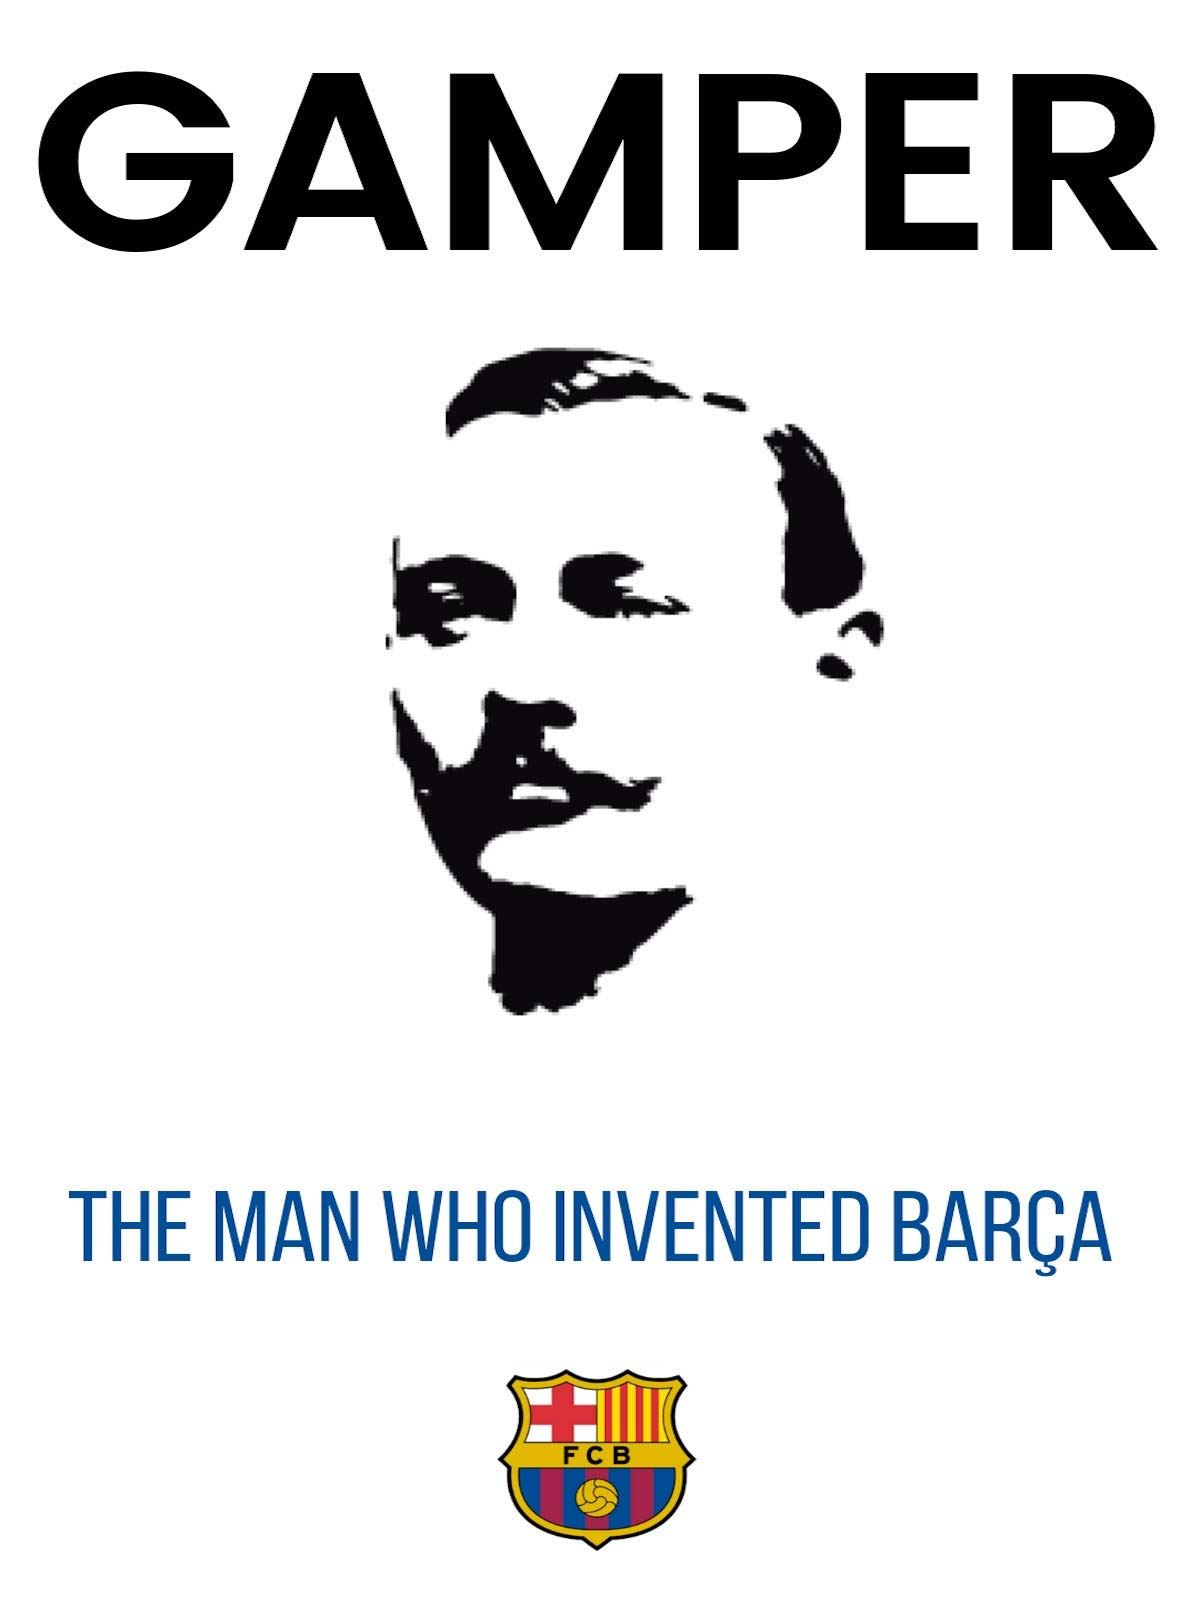 Gamper: The Man who Invented Barça